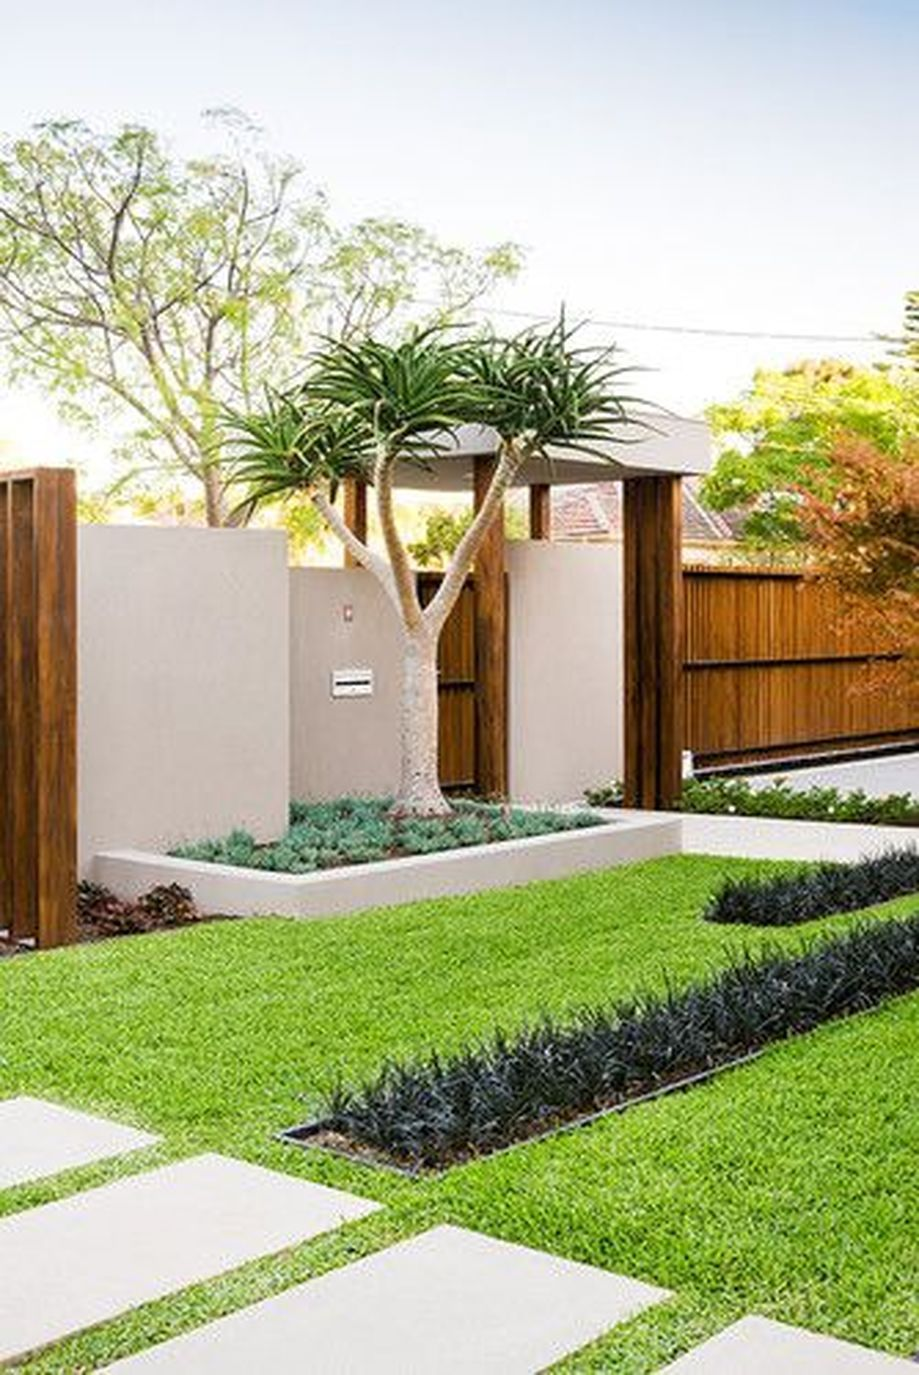 Modern And Contemporary Front Yard Landscaping Ideas 1 Minimalist Garden Modern Landscaping Front Yard Design Front yard modern landscaping ideas